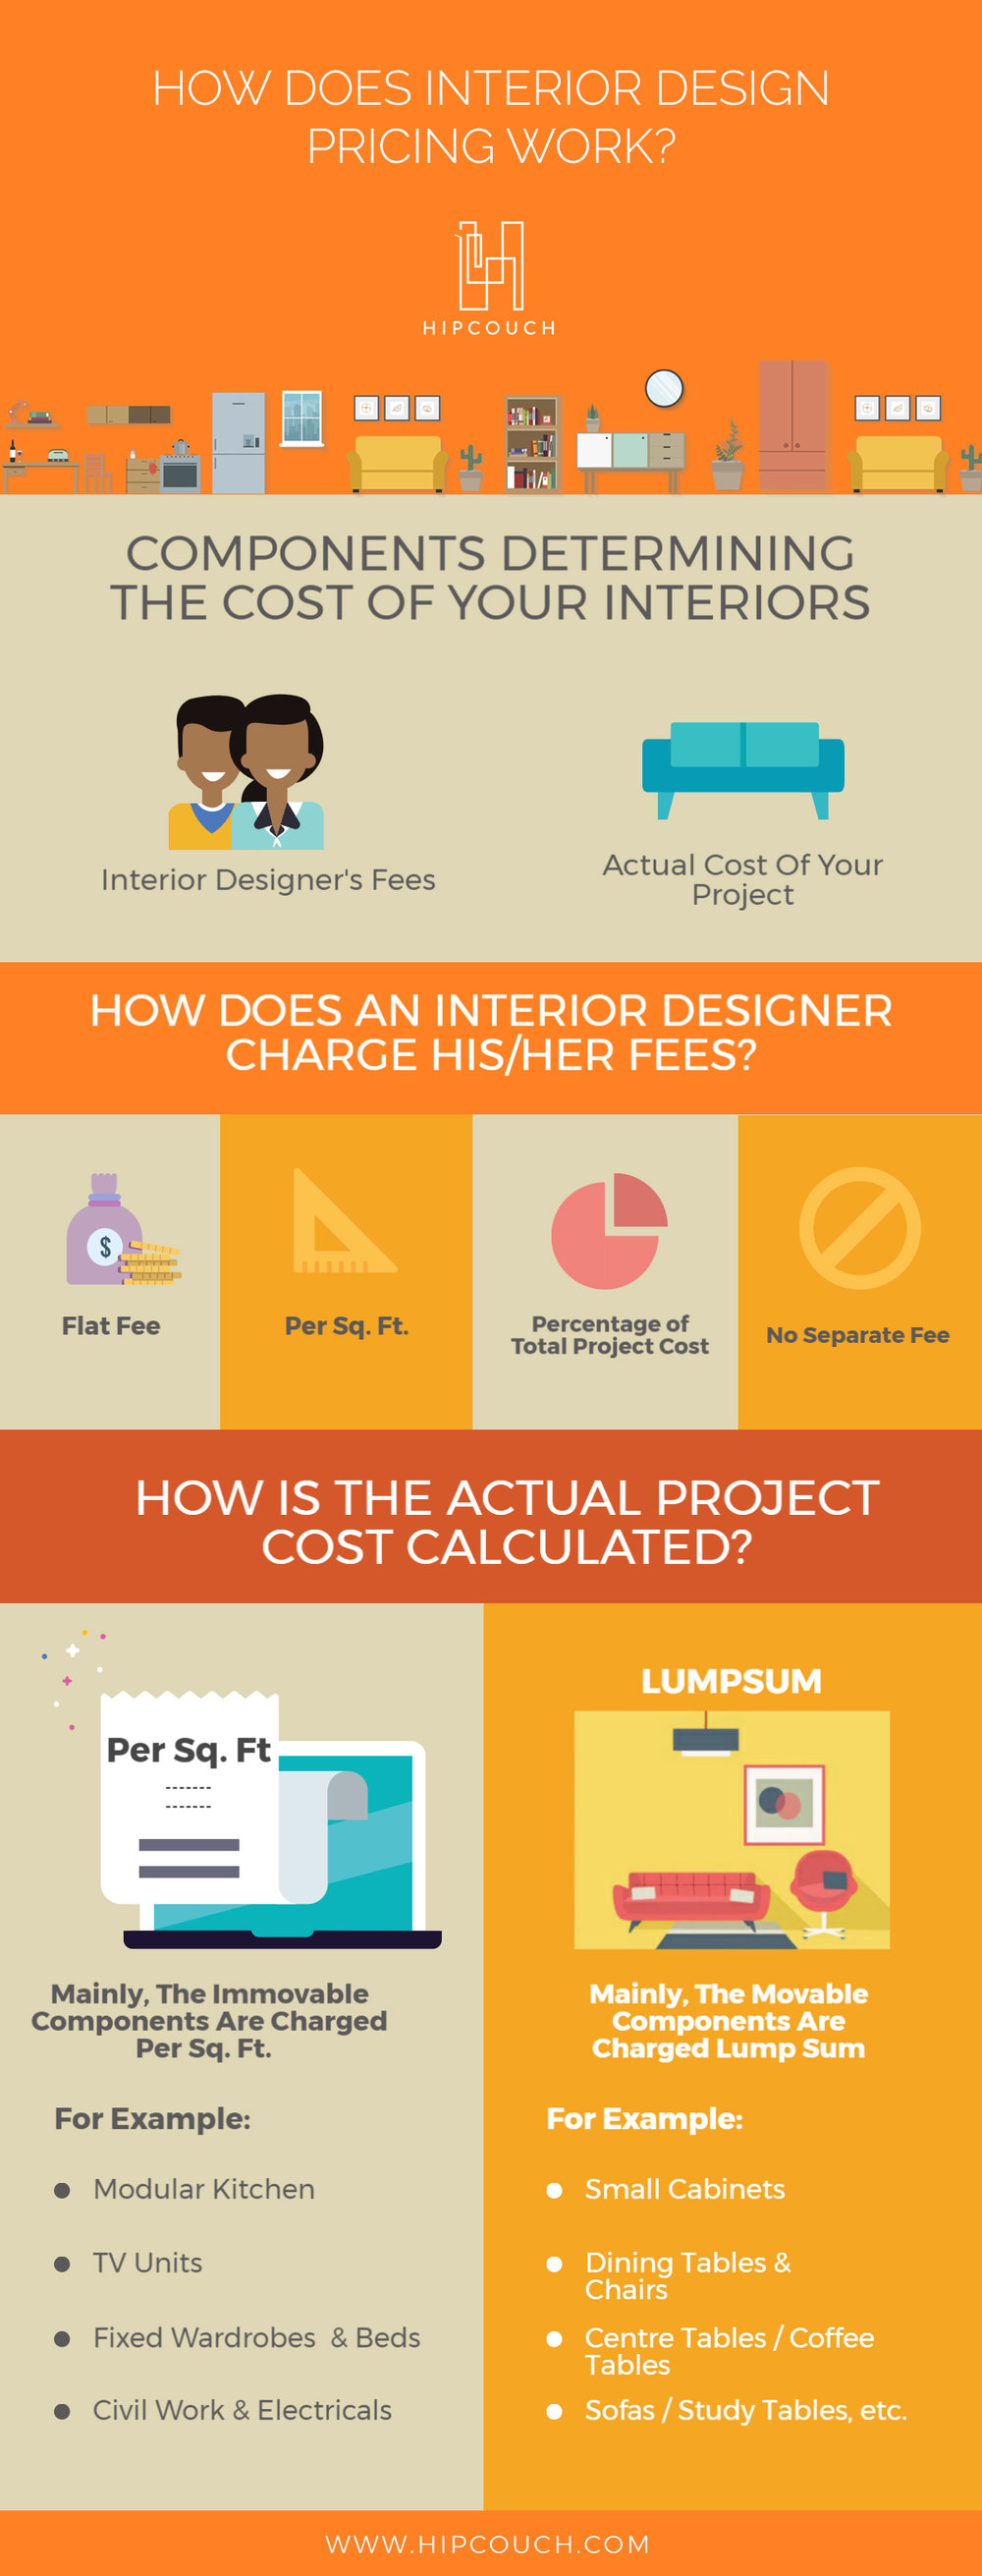 And Donu0027t Forget To Take A Look At Our Quick Visual Guide To Help You  Understand The Interior Design Pricing!